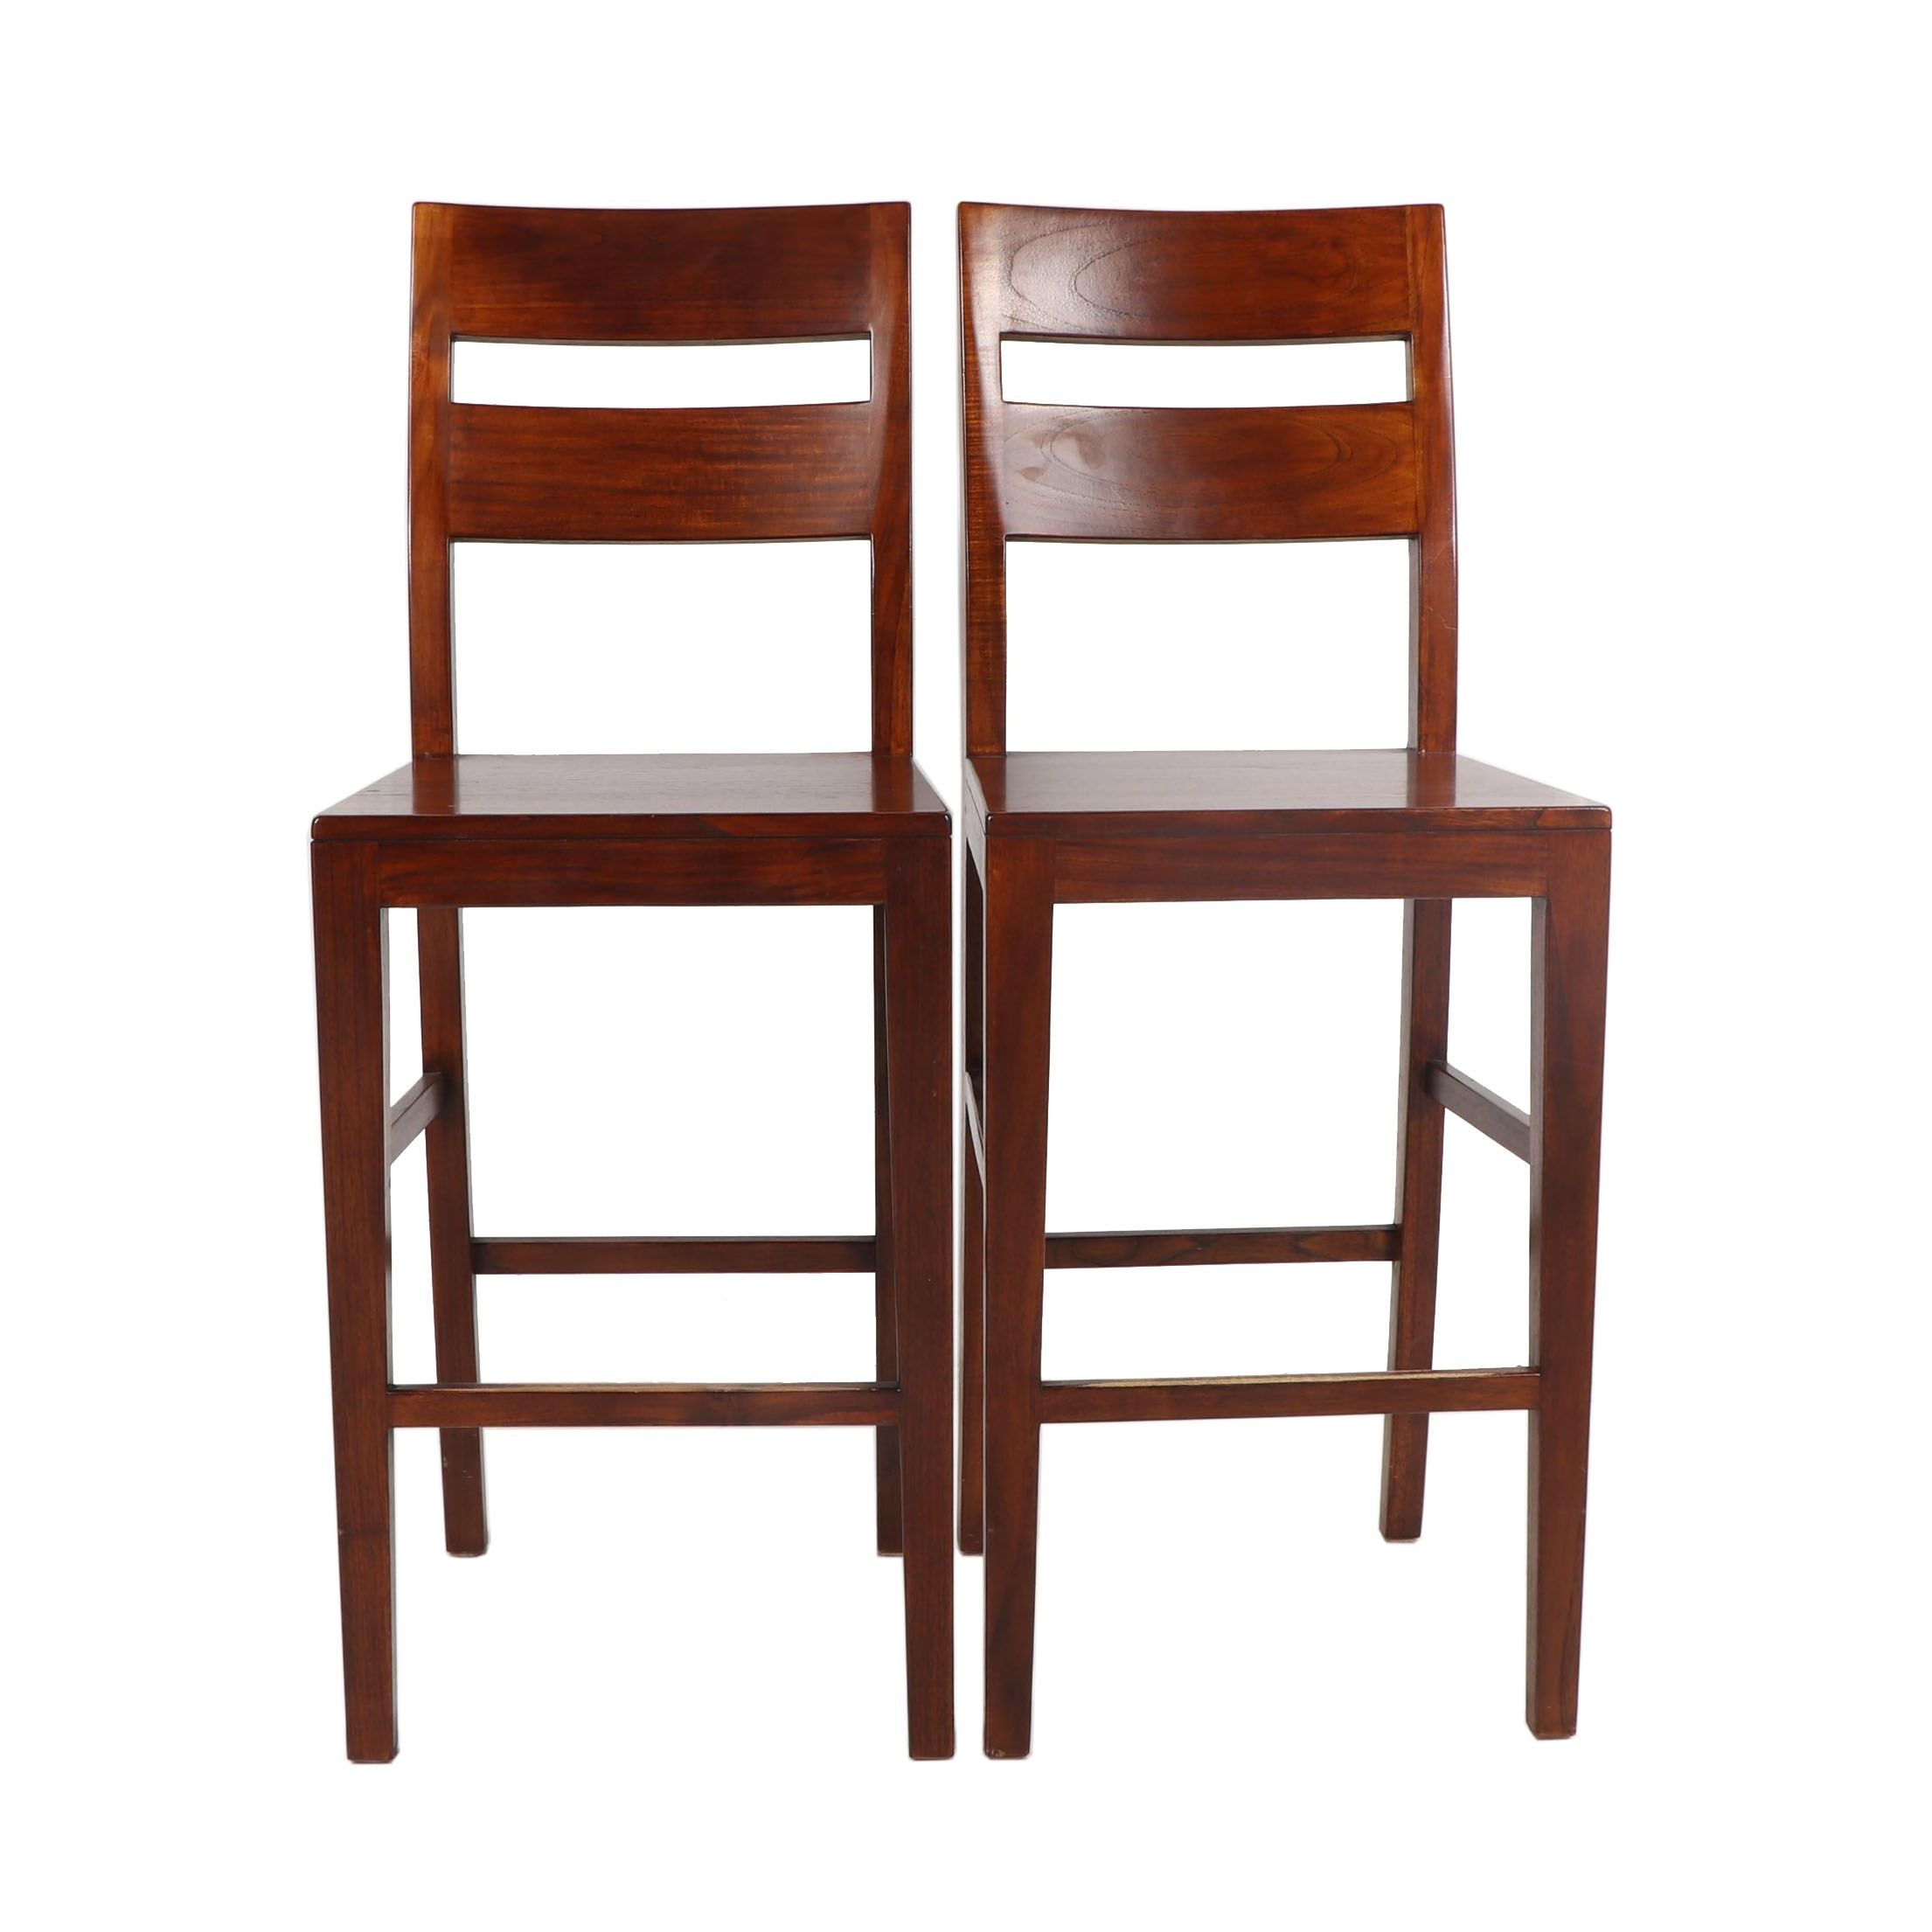 """""""Basque"""" Mangowood Bar Stool Pair by Crate & Barrel, 21st Century"""